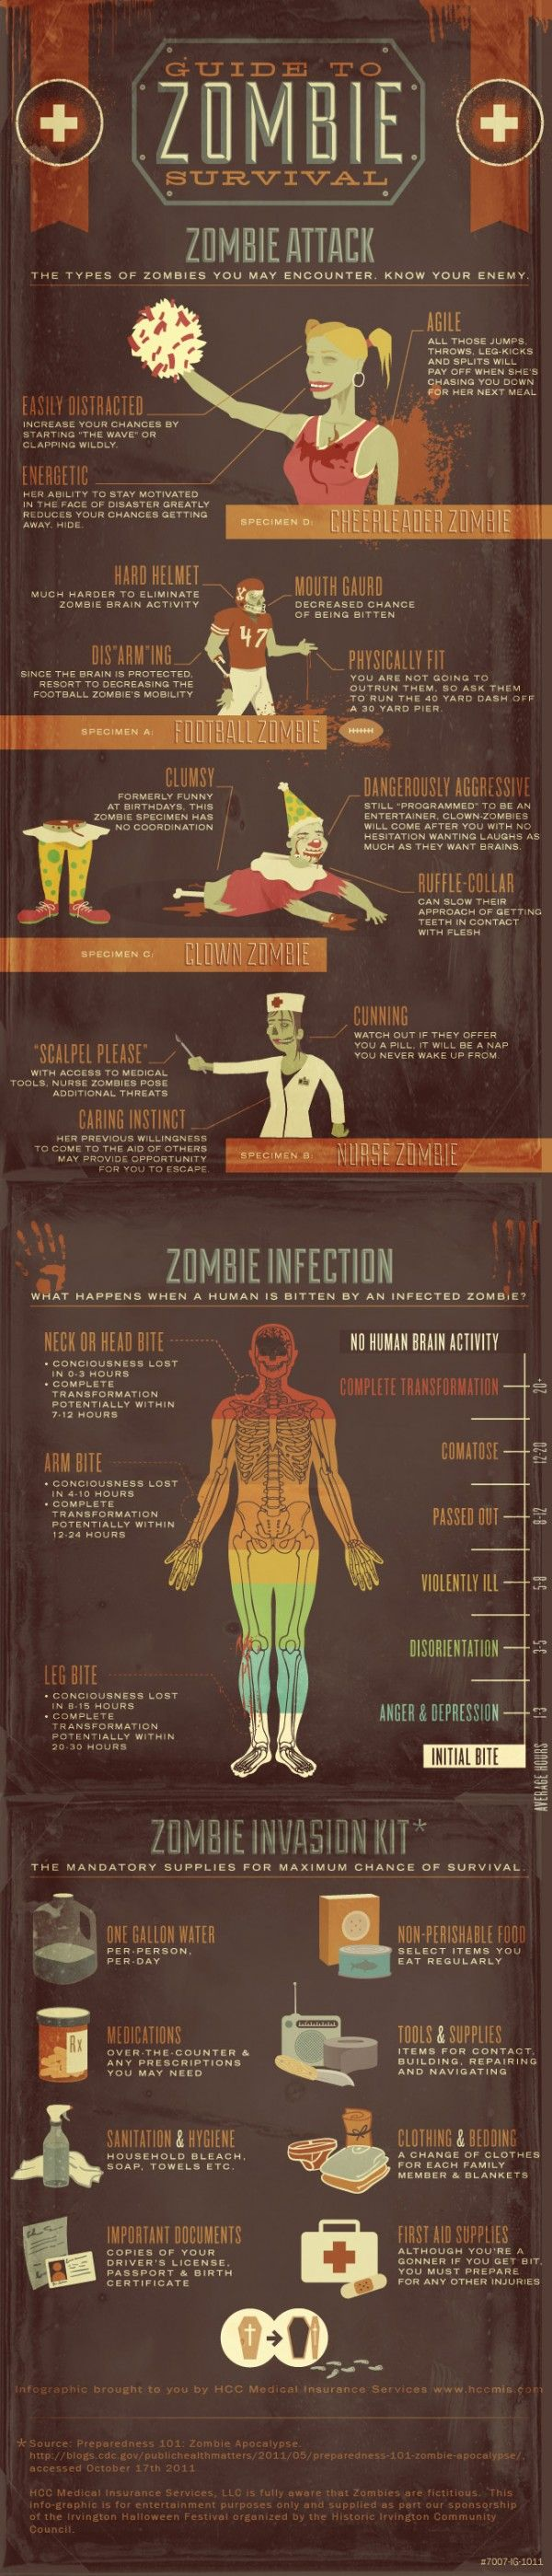 ZombieInfographic3